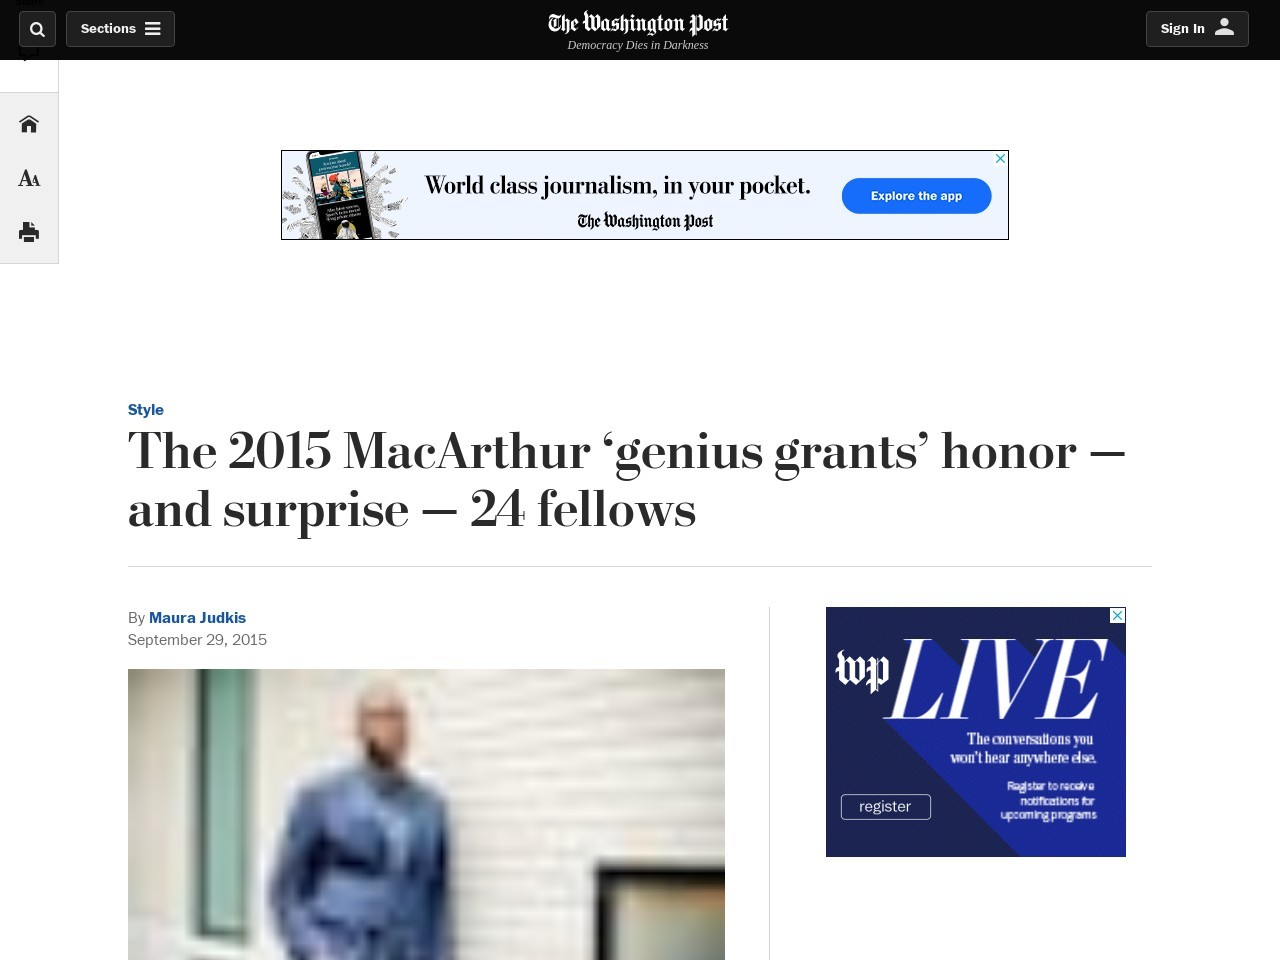 The 2015 MacArthur 'genius grants' honor — and surprise — 24 fellows